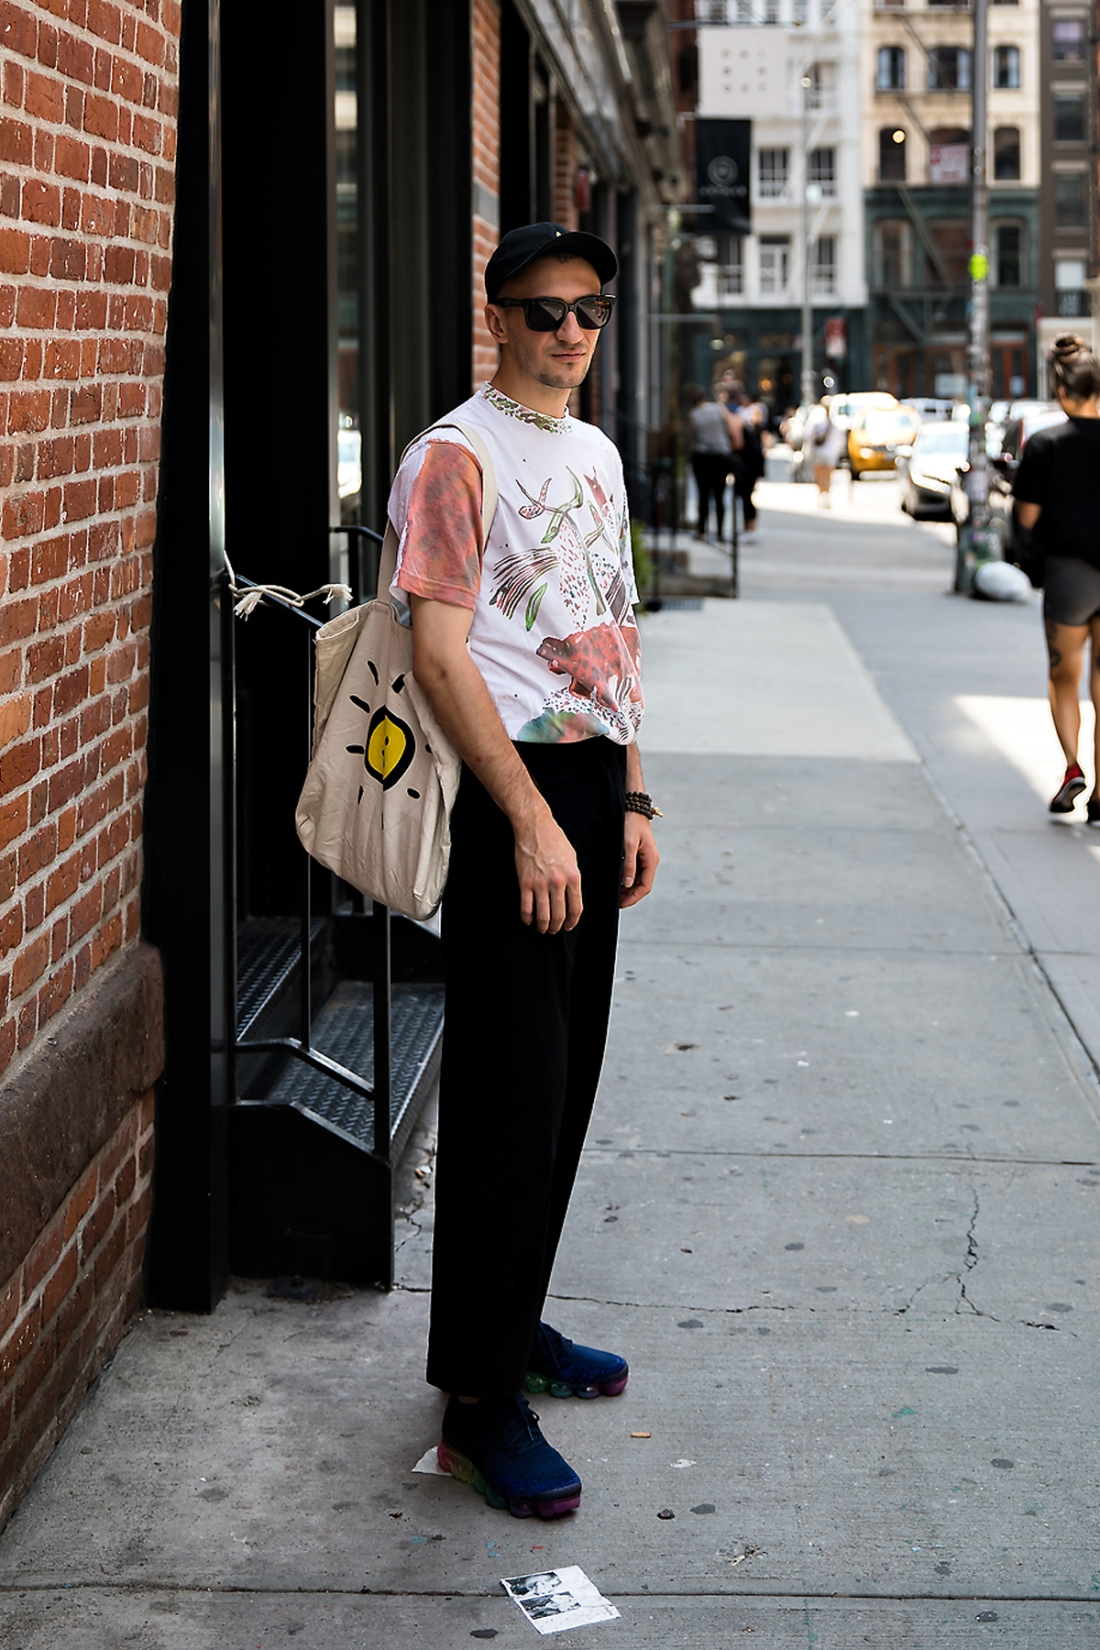 Ilya Vershinin, Street Fashion 2017 in New York.jpg